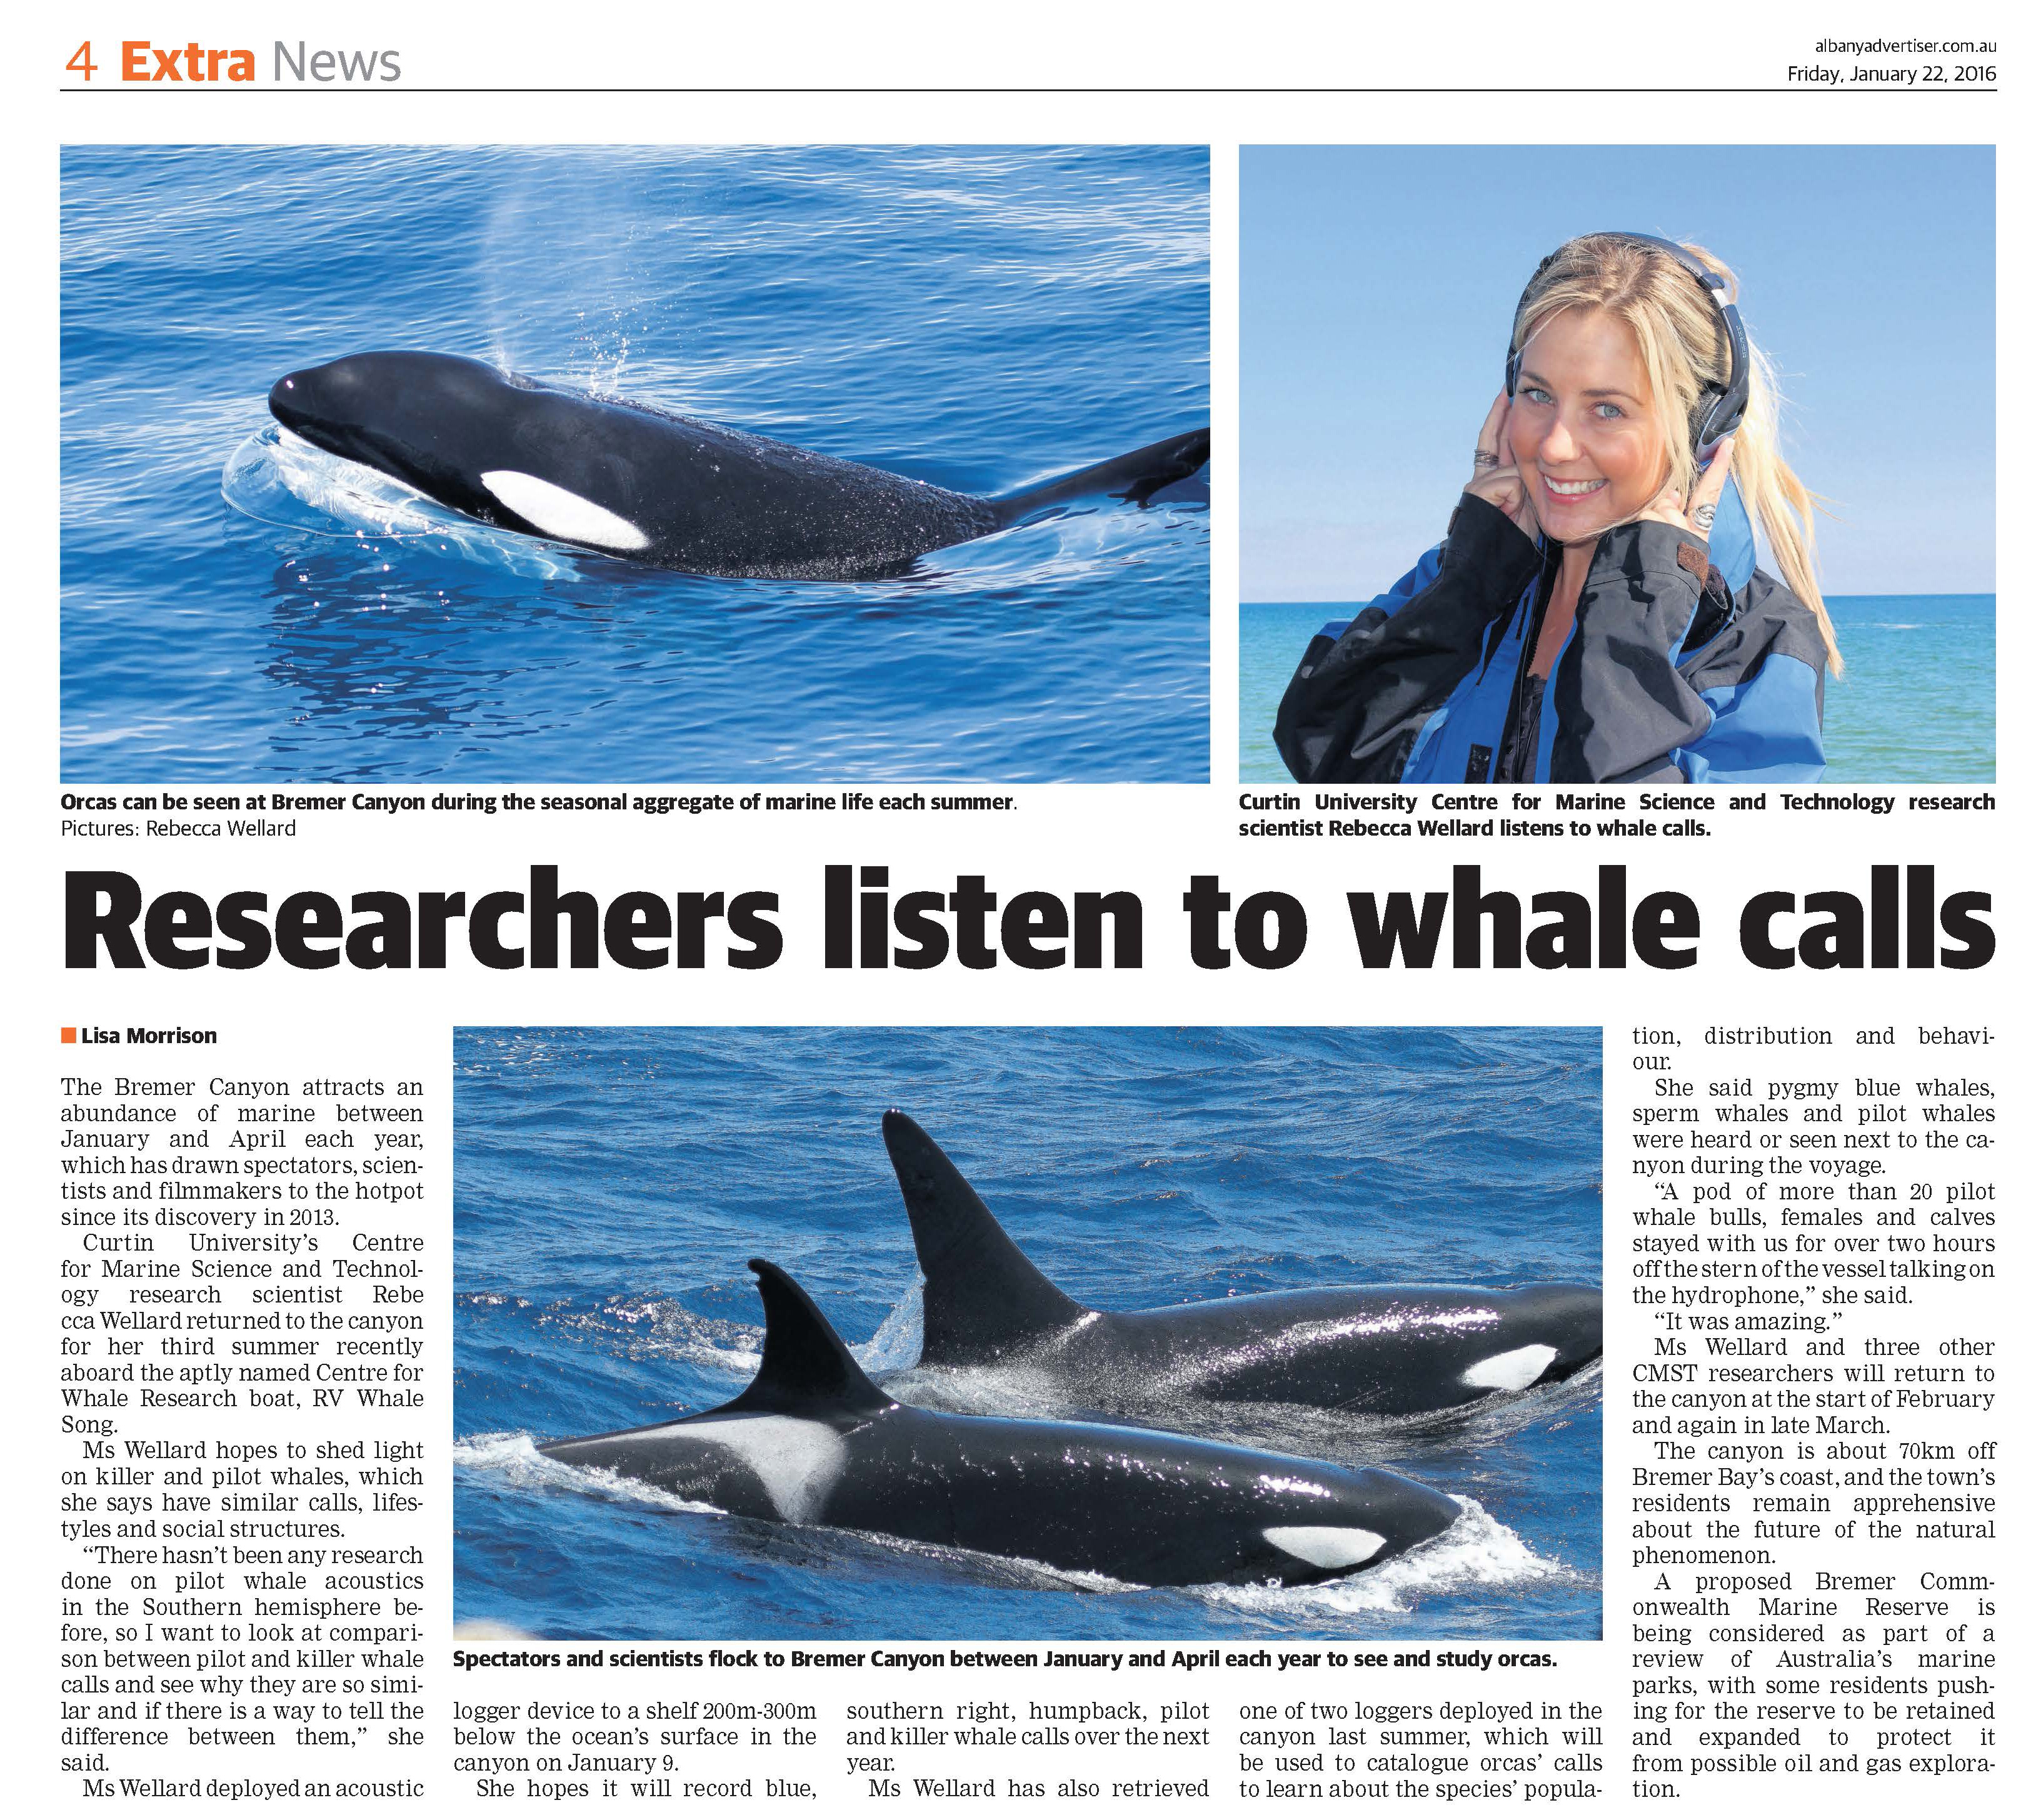 researchers listen to whale calls albany advertiser 22jan 2016